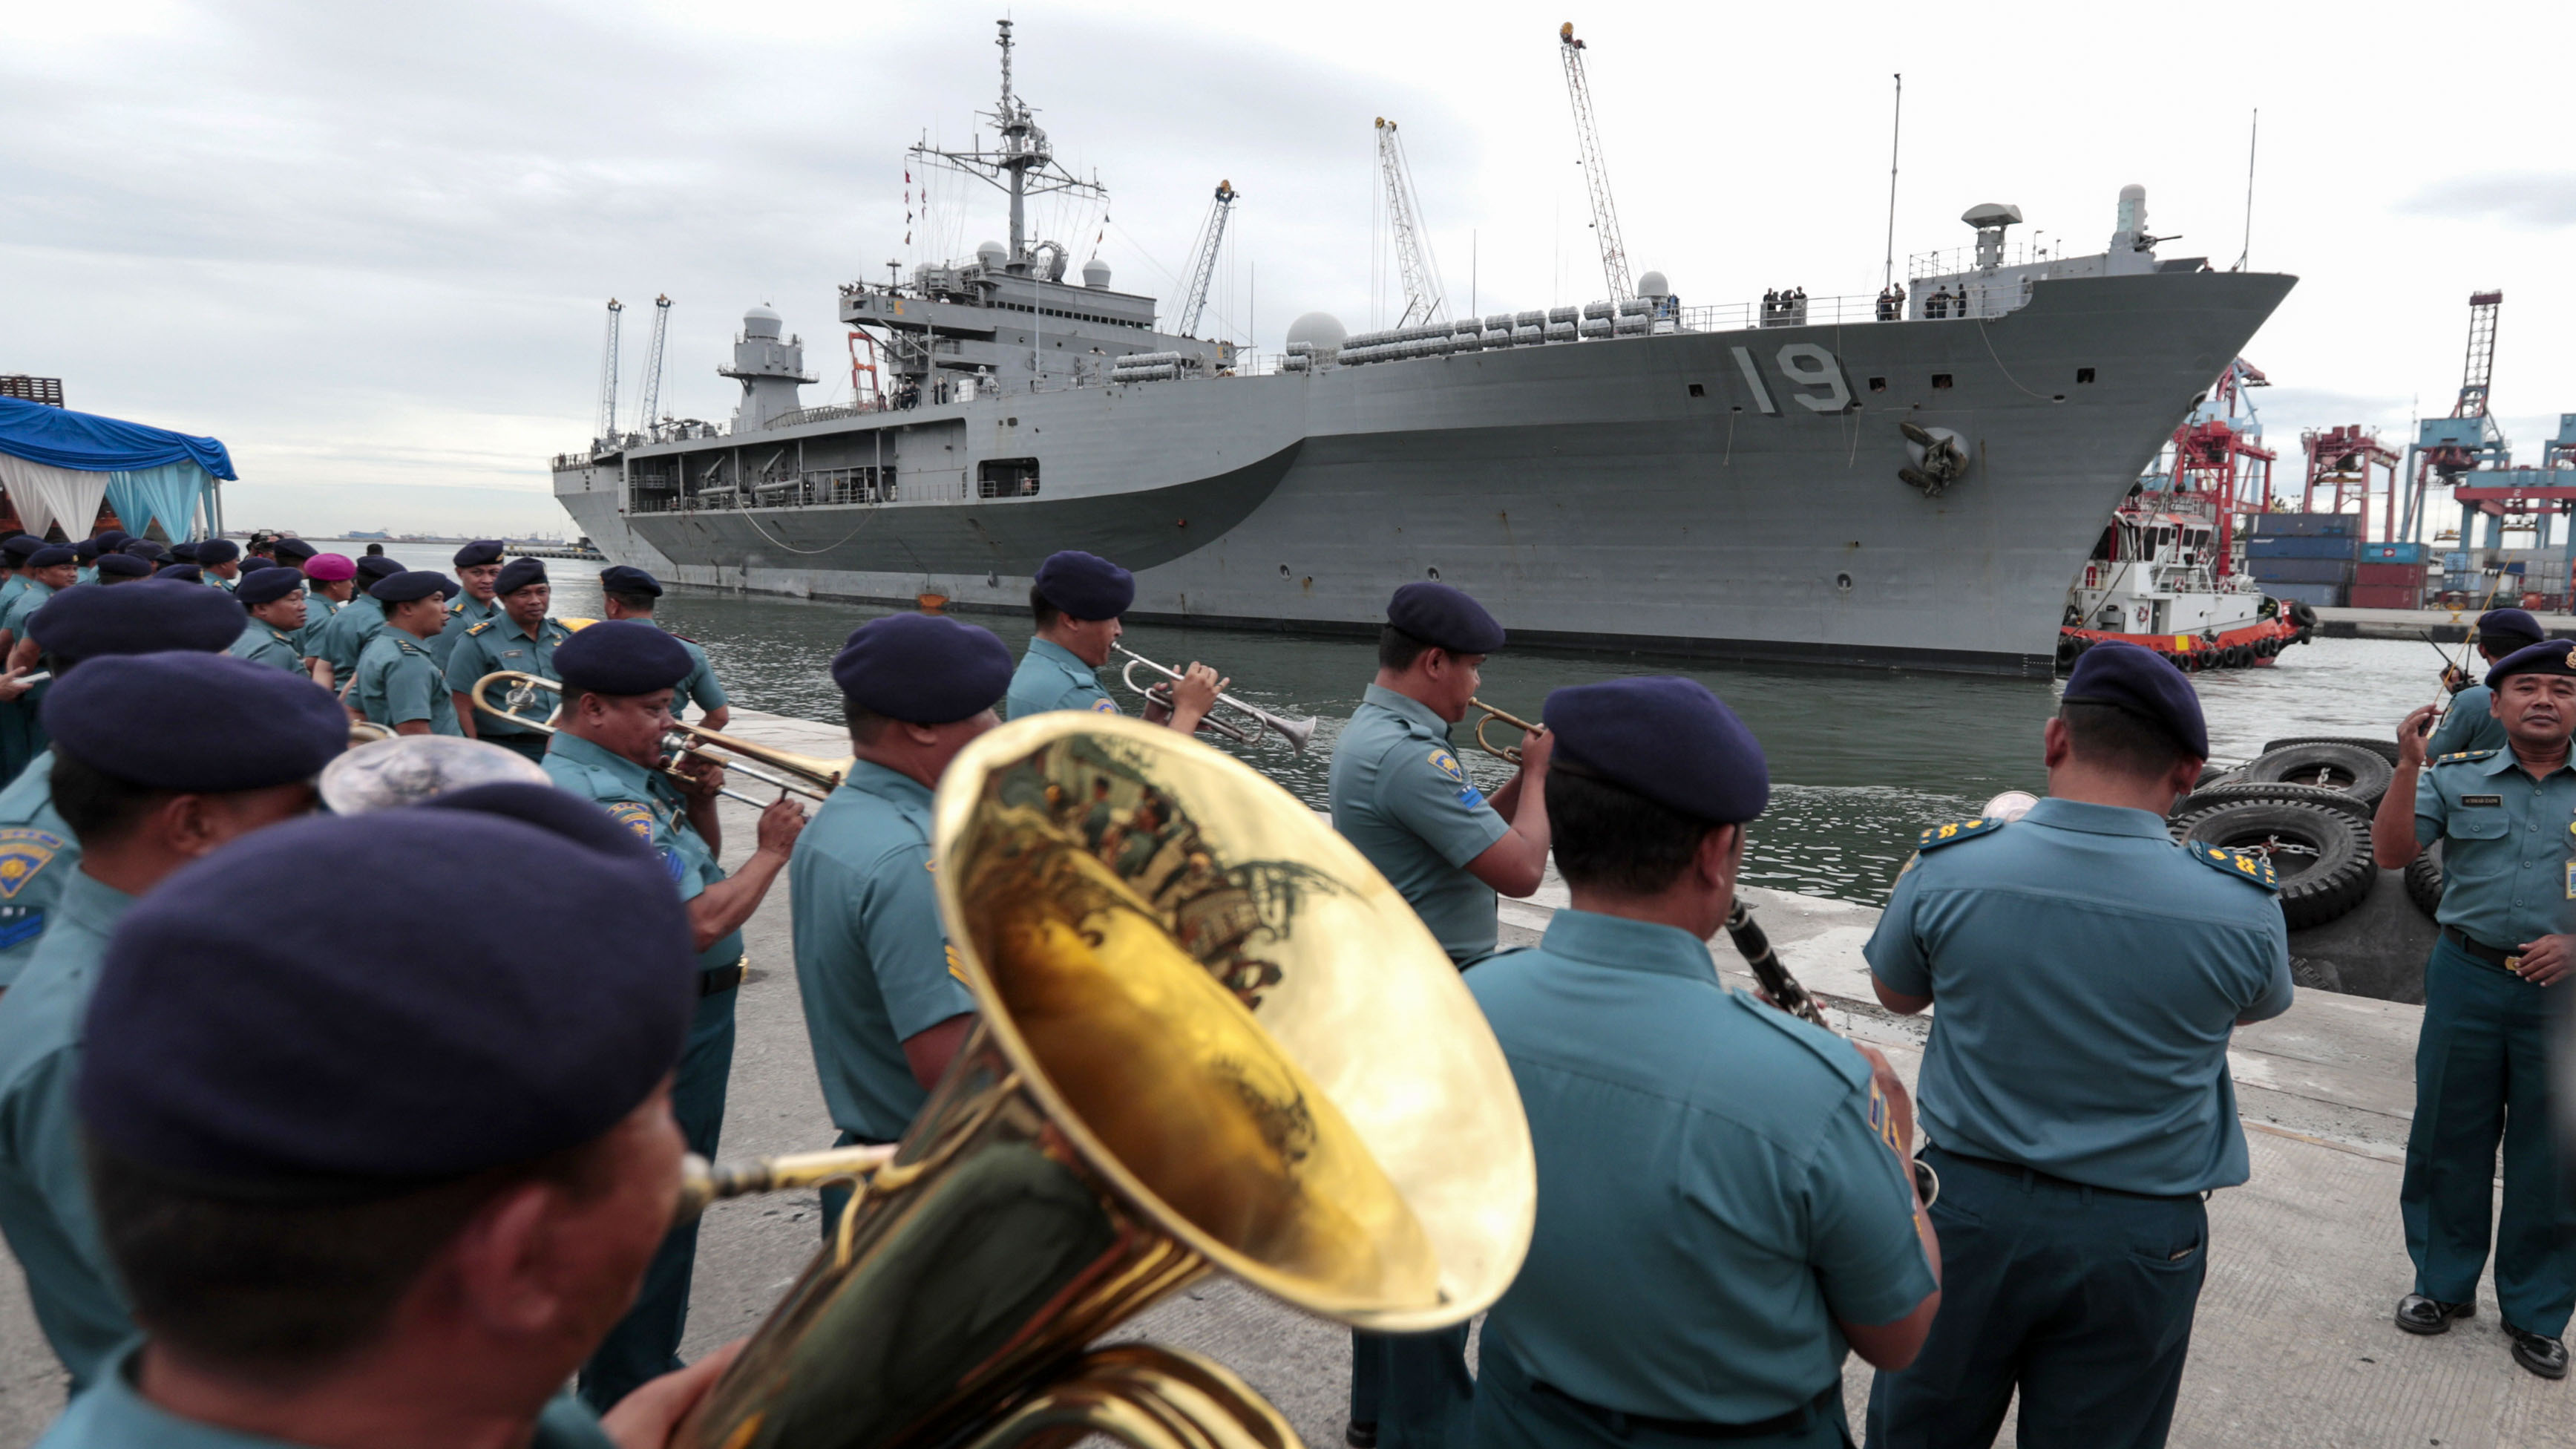 Indonesian Navy band plays as U.S. Navy ship USS Blue Ridge prepares to dock at Tanjung Priok Port in Jakarta, Indonesia, Wednesday, May 1, 2019. The flagship of the U.S. Seventh Fleet which is also the oldest operational ship in the U.S. Navy arrived Wednesday in Jakarta for a five-day visit in the country. (AP Photo/Dita Alangkara)